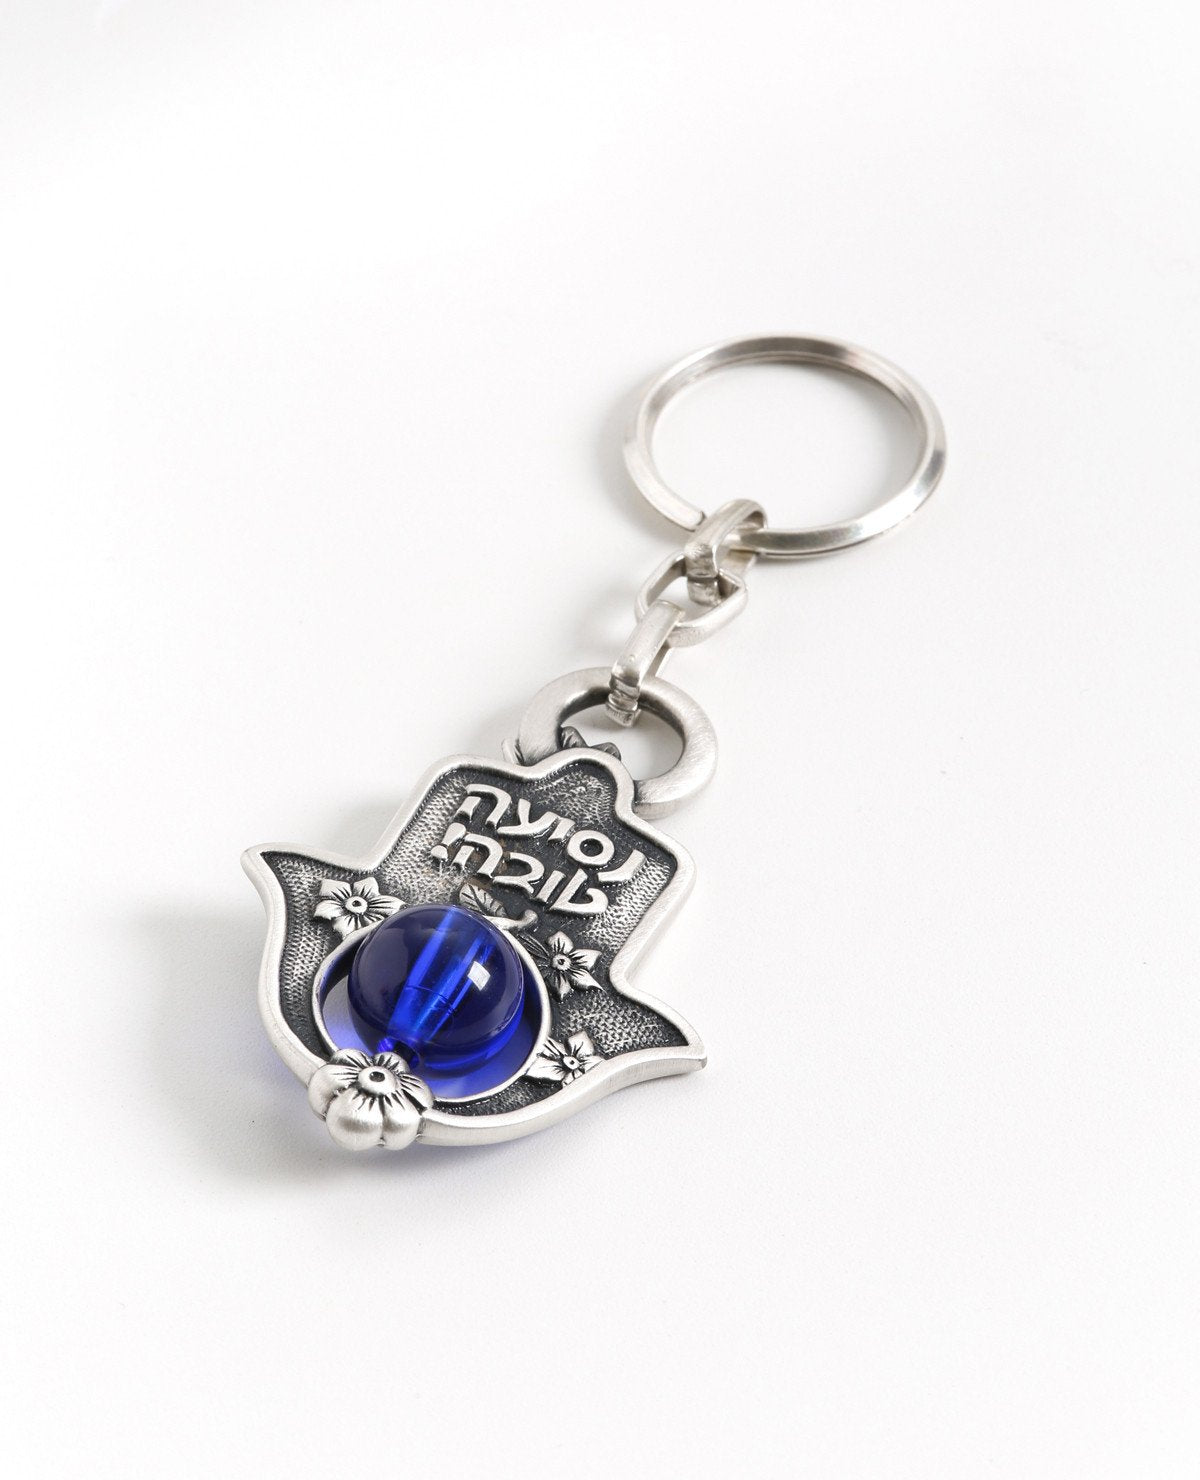 "A delicate and charmingly designed Hamsa keychain. The Hamsa is coated in sterling silver and has a stunning blue bead which can be seen from both sides of the Hamsa threaded on its bottom part. On the one side is a delicate flower decor with the embossed words ""Bon Voyage!"" while the other side is decorated with flowers and a pair of fish. The keychain is strong and reliable. Makes a great present for anyone whose vehicle's keys are in need of a pretty holder. Blessed with the Hamsa charm against the ""evil"